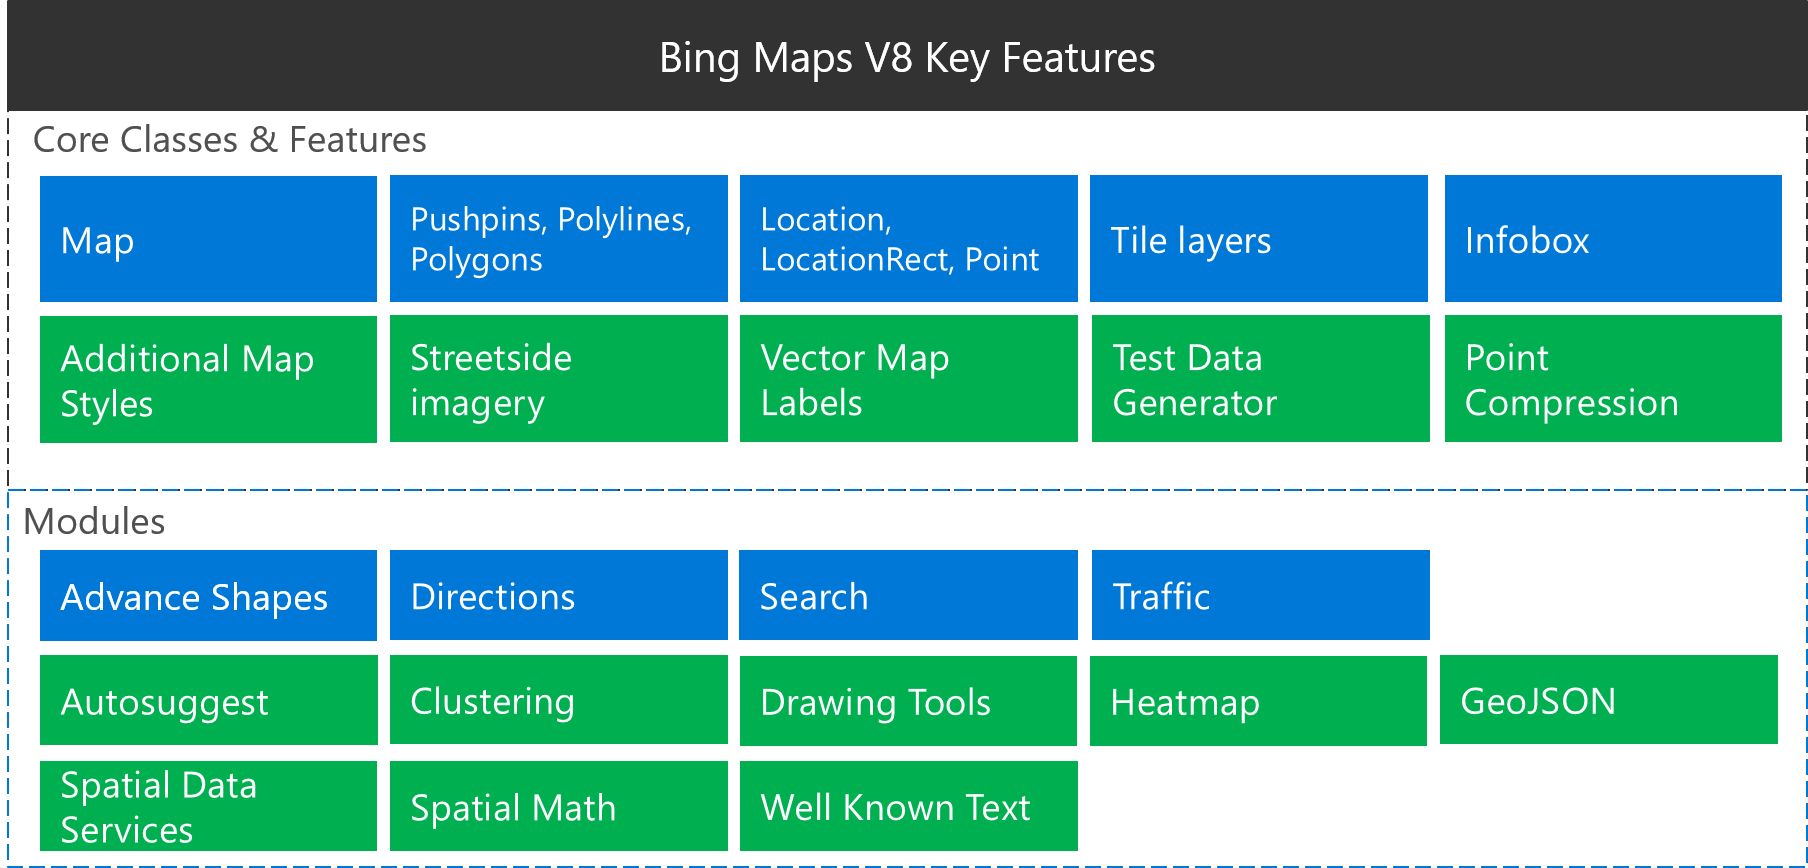 of the key features listed between v7 and v8 only one feature was deprecated venue maps see the 31 deprecated modules section of this document for more